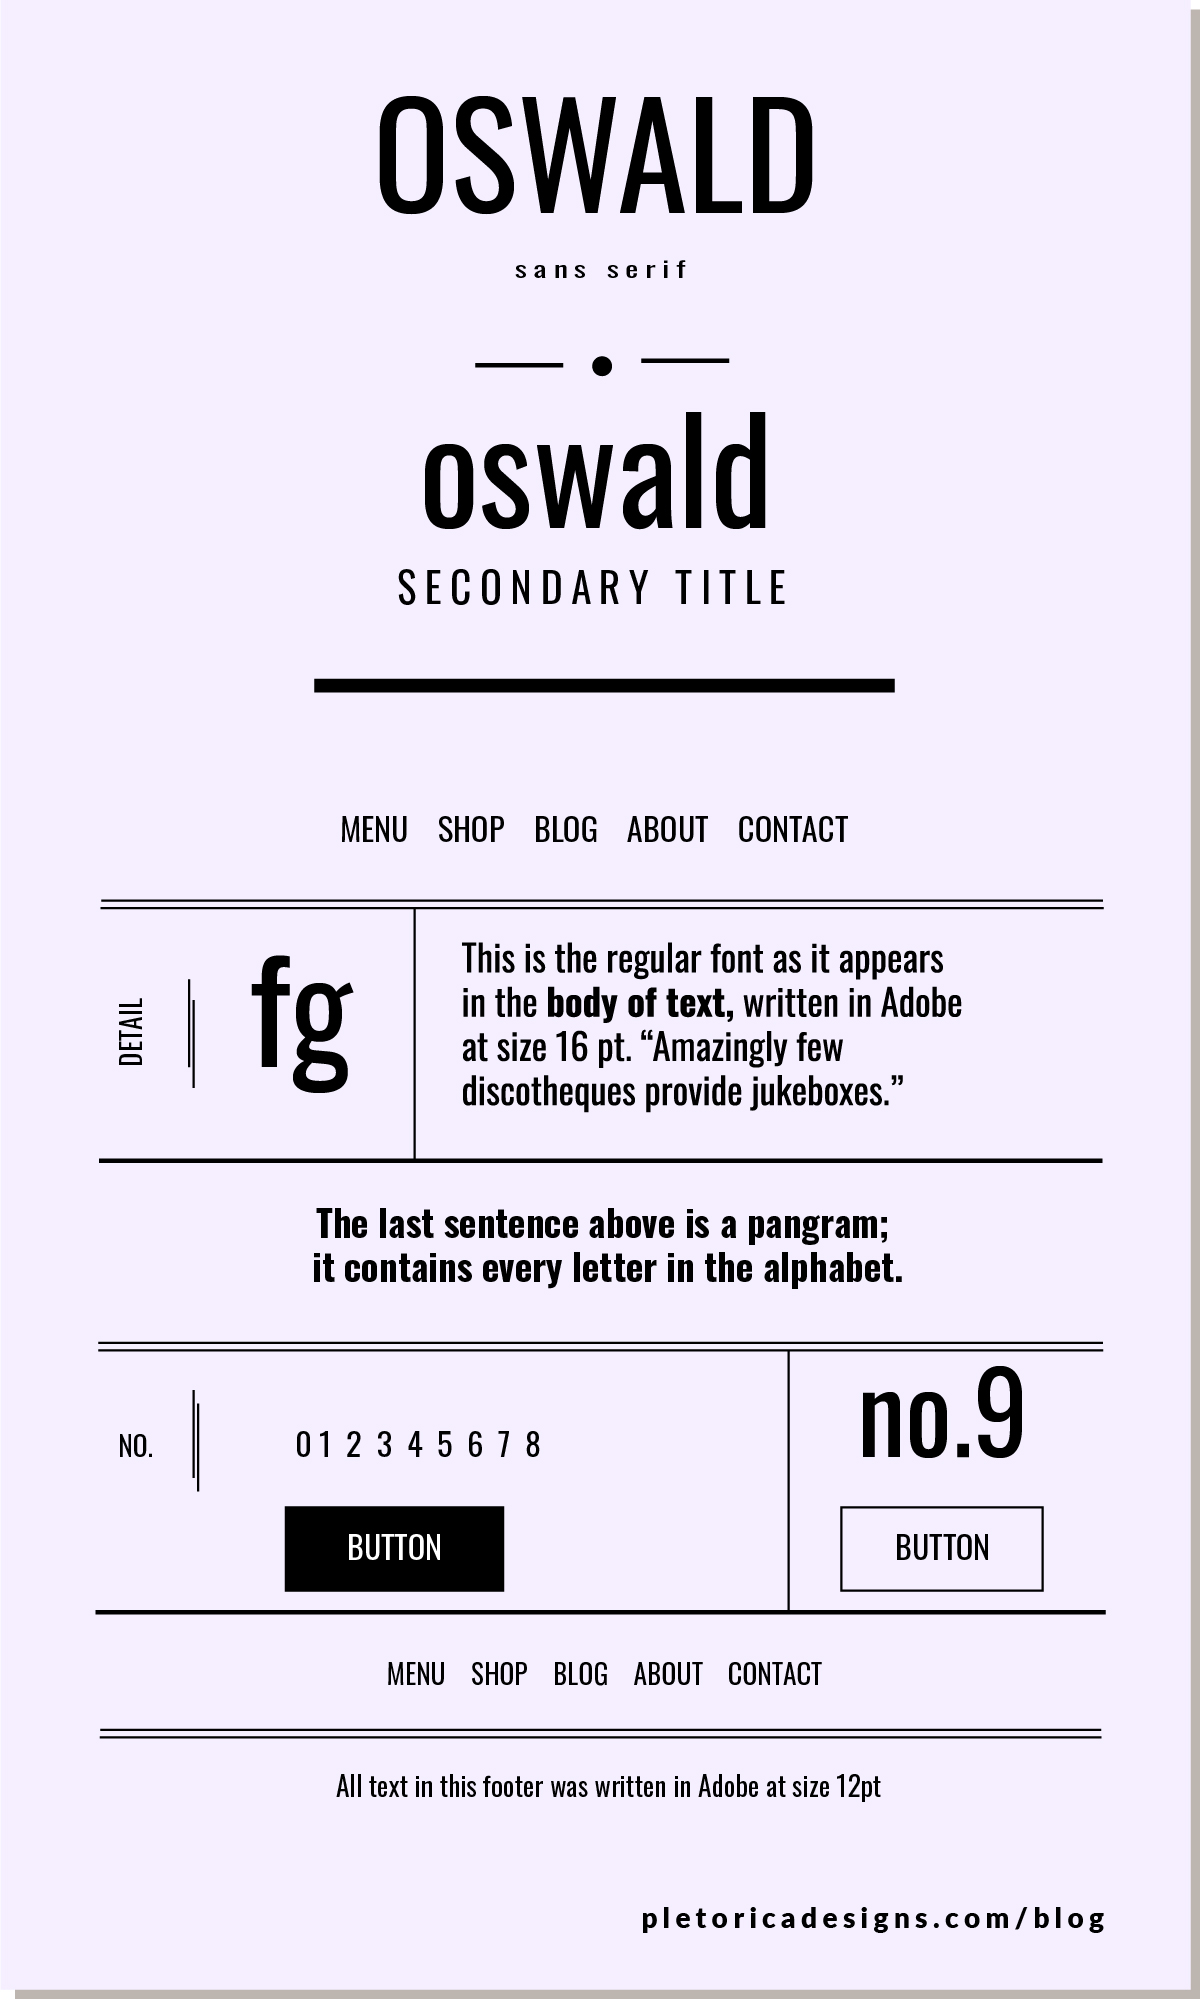 LET'S TYPE: Oswald — PLETÓRICA DESIGNS